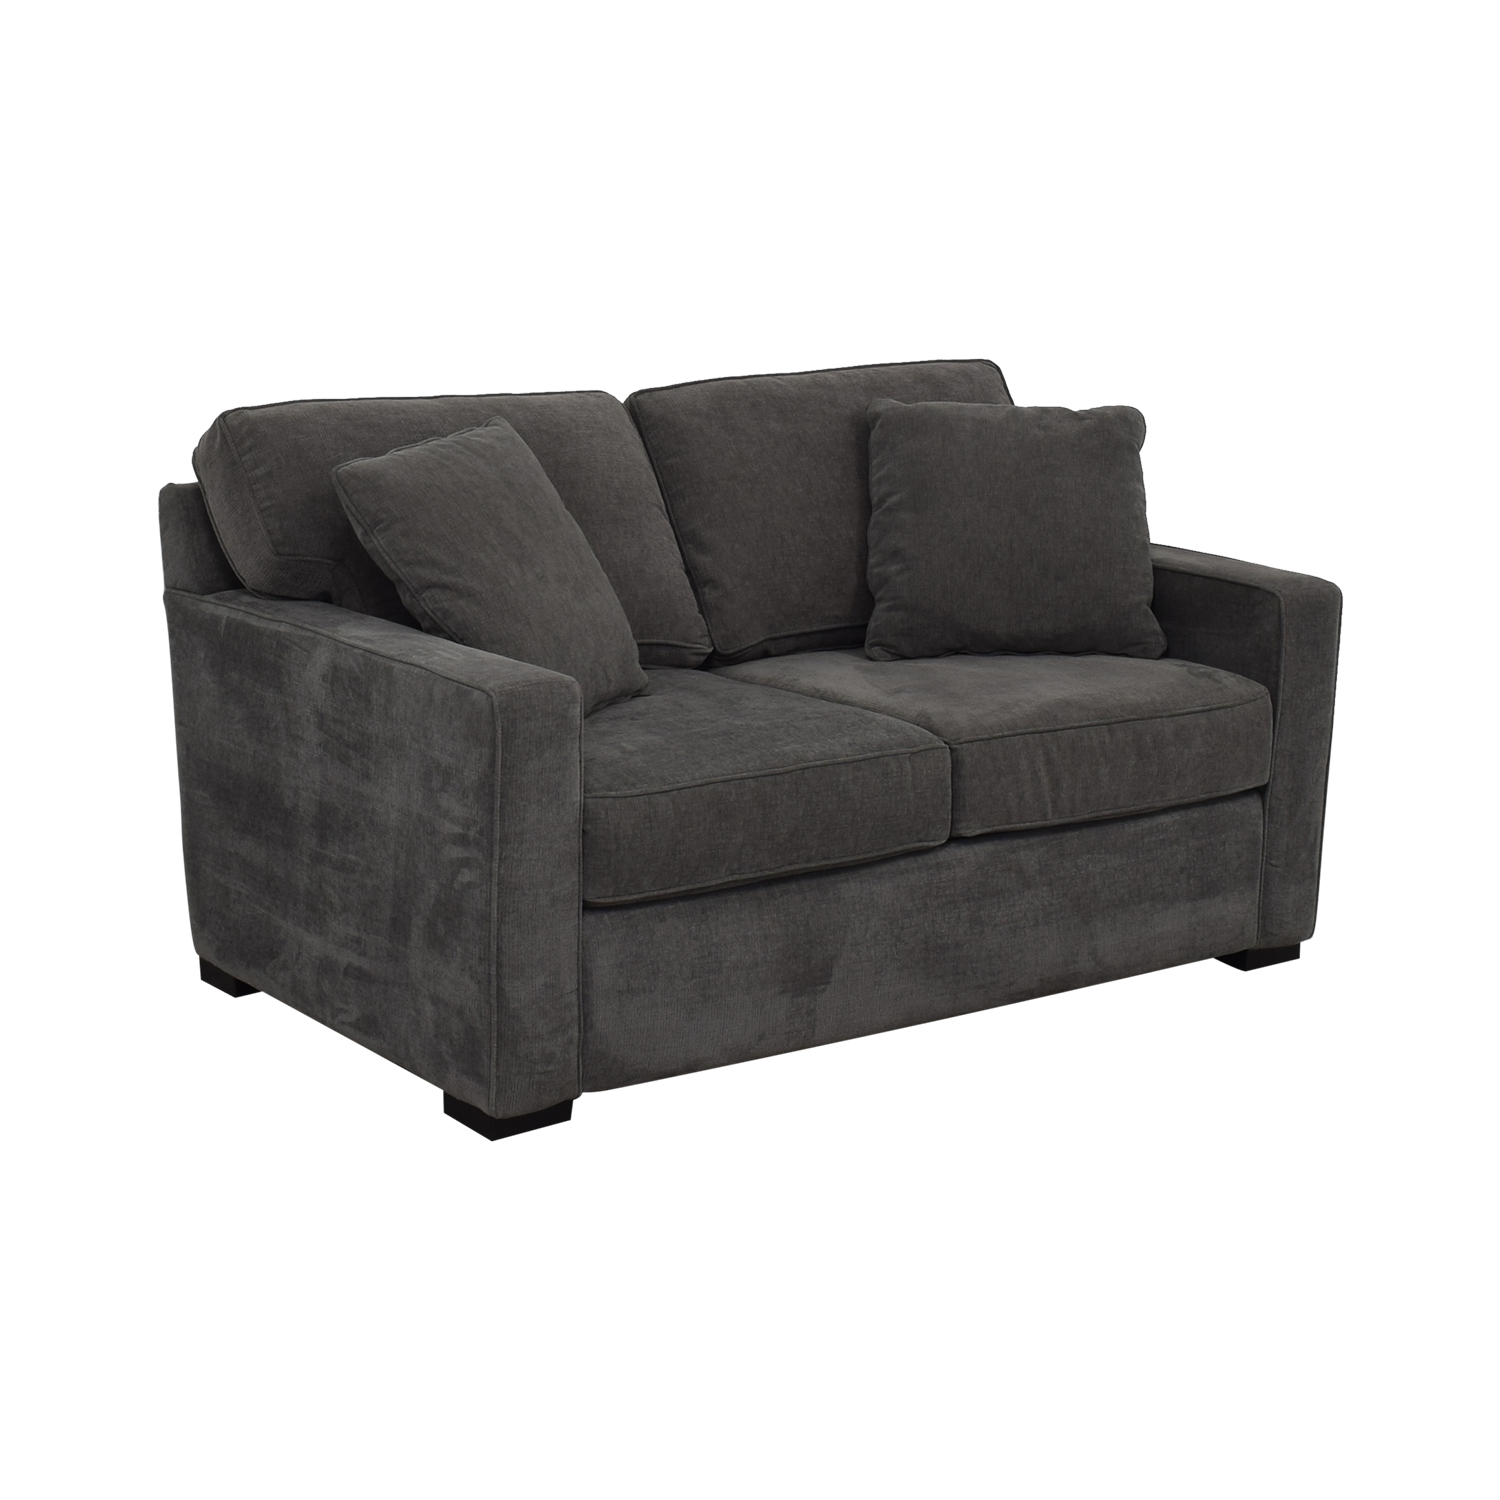 Macy's Macy's Grey Two-Cushion Loveseat discount